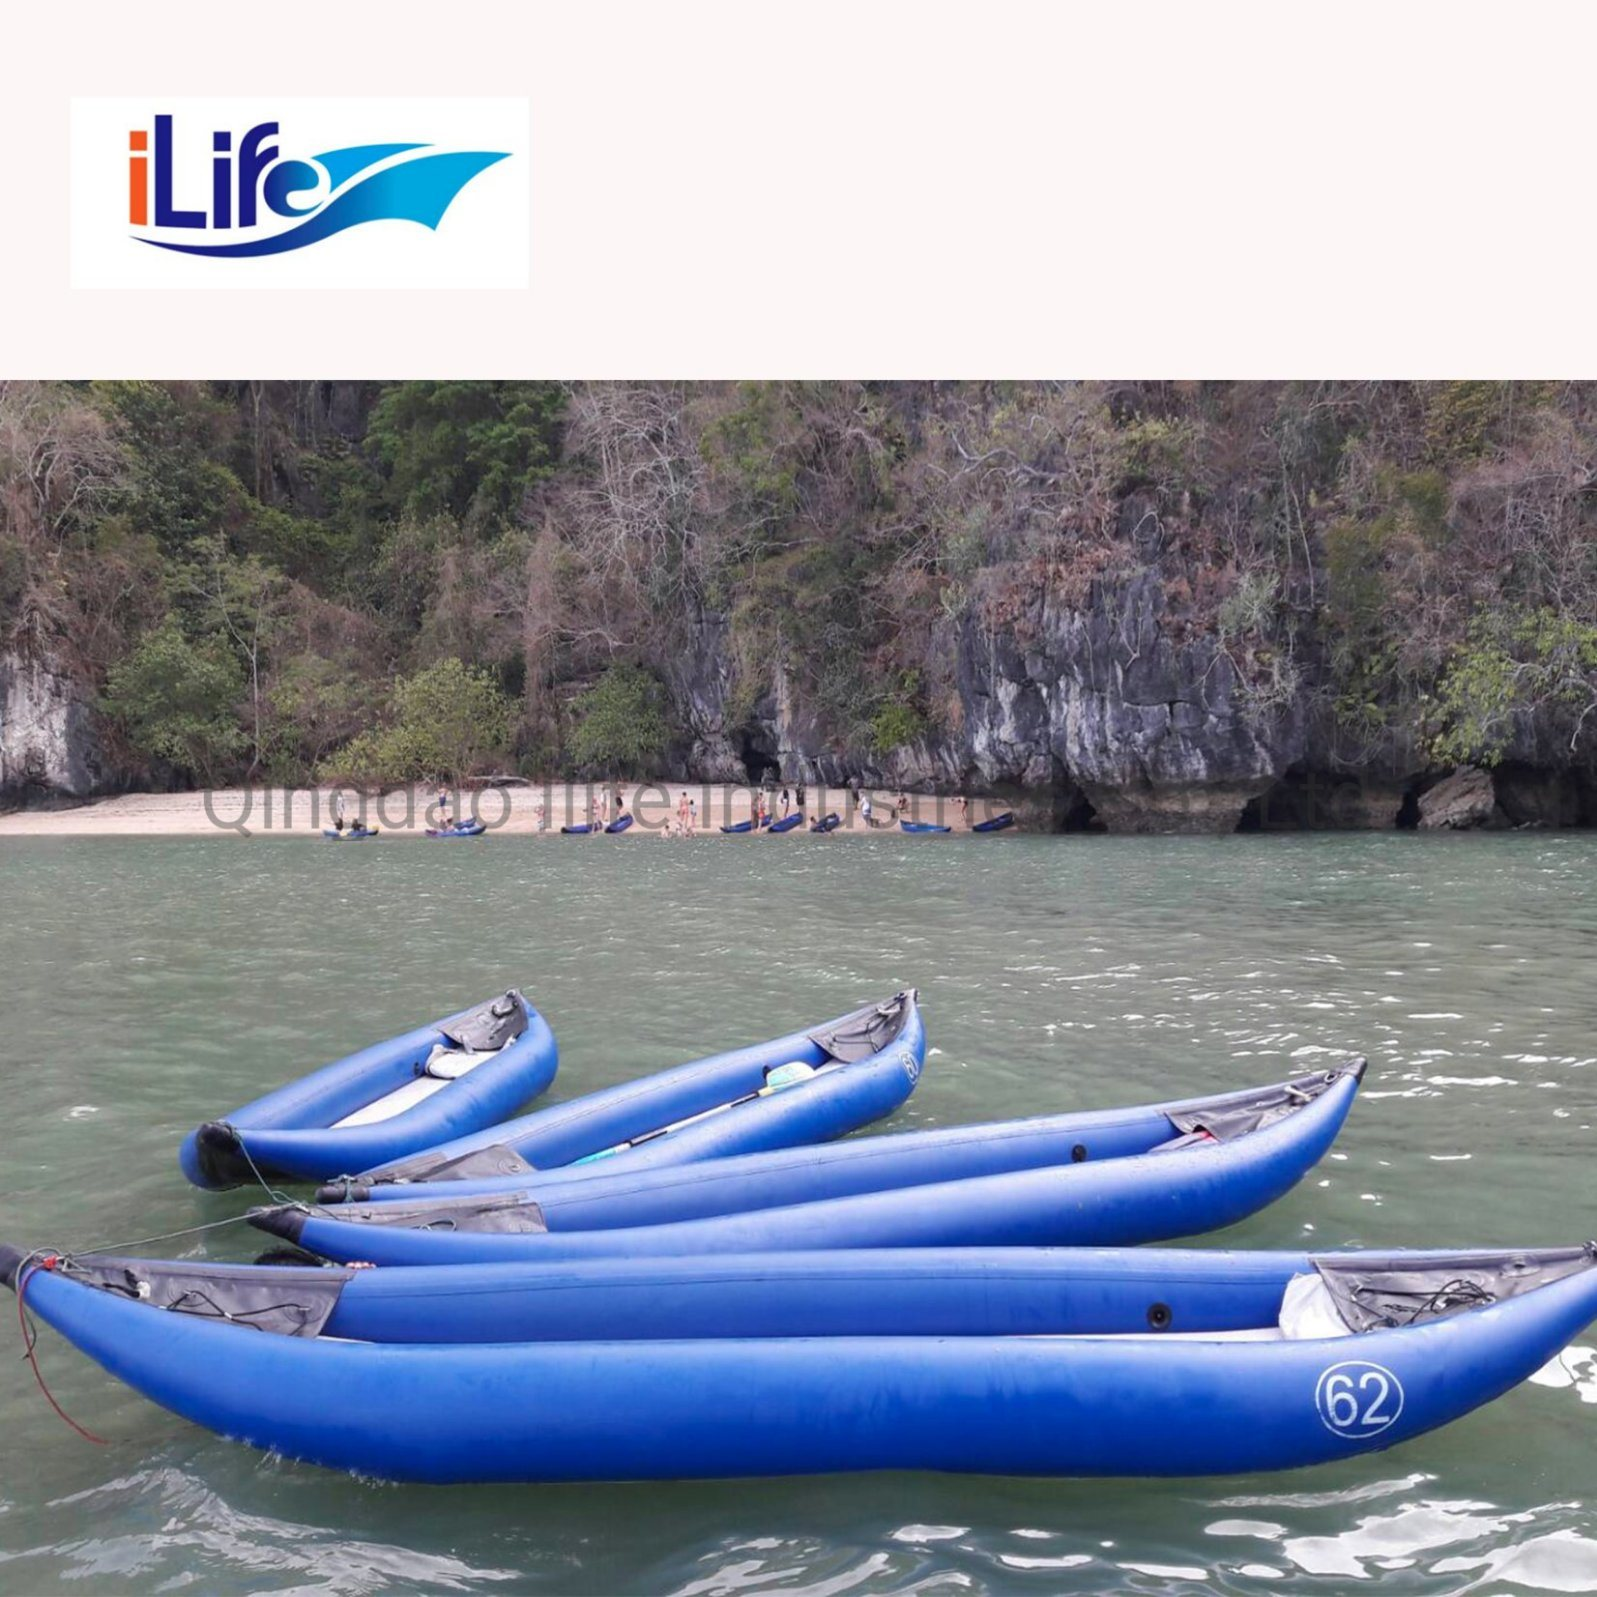 [Hot Item] Ilife PVC Drop Stitch Inflatable Pedal 2 Person Fishing  Whitewater Kayaks Self Bailing I-Beam Floor